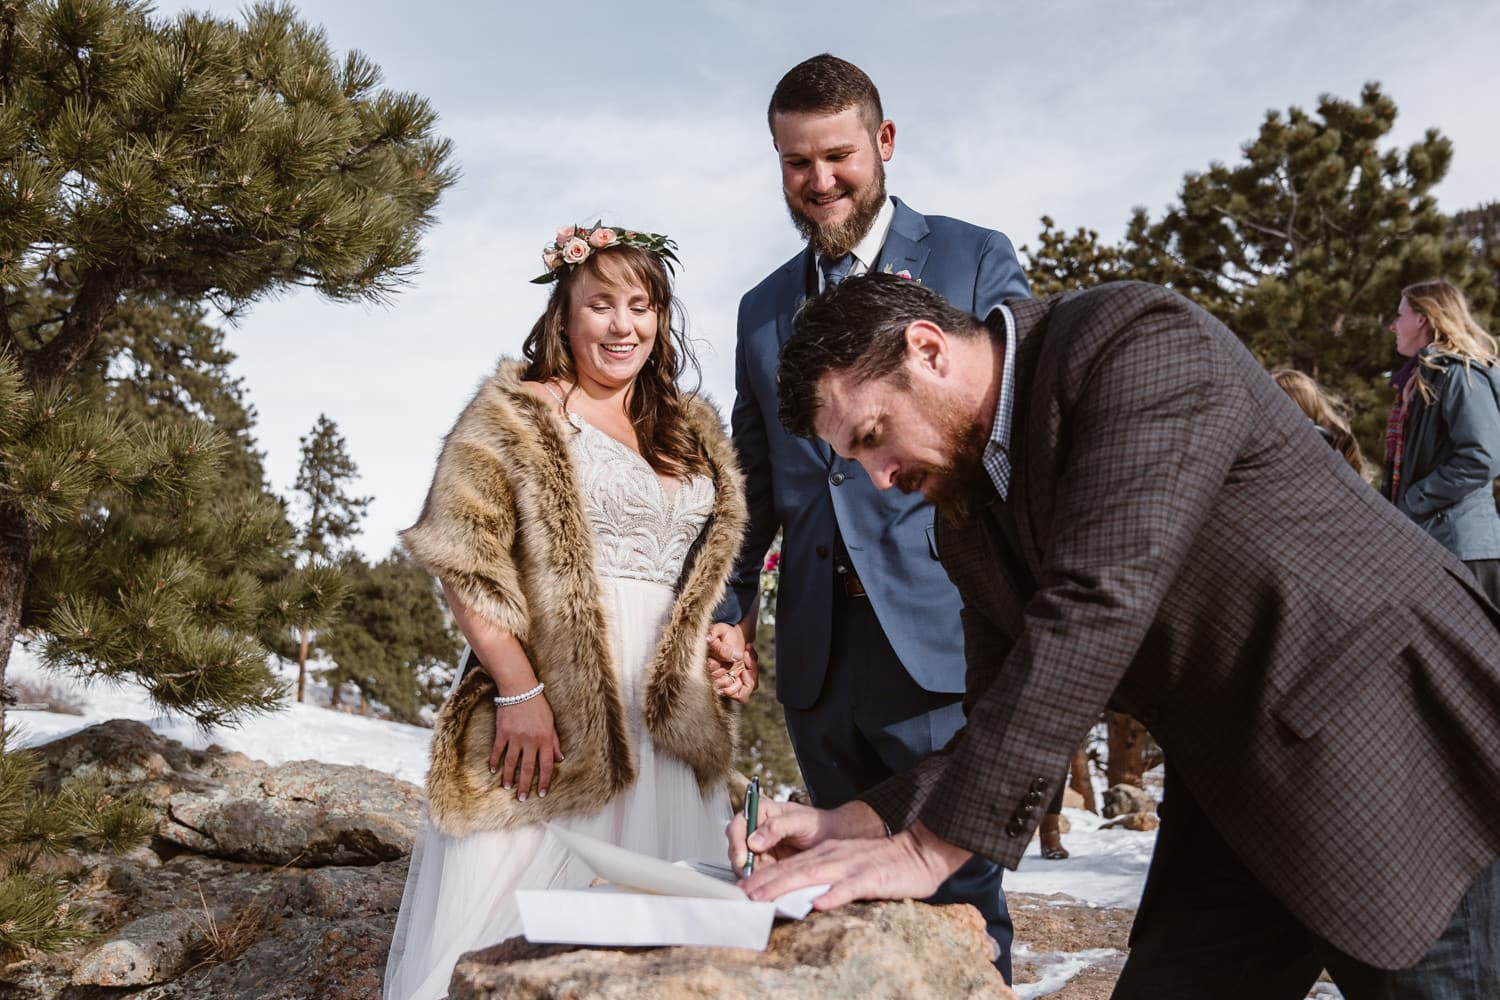 Estes Park Elopement Marriage License